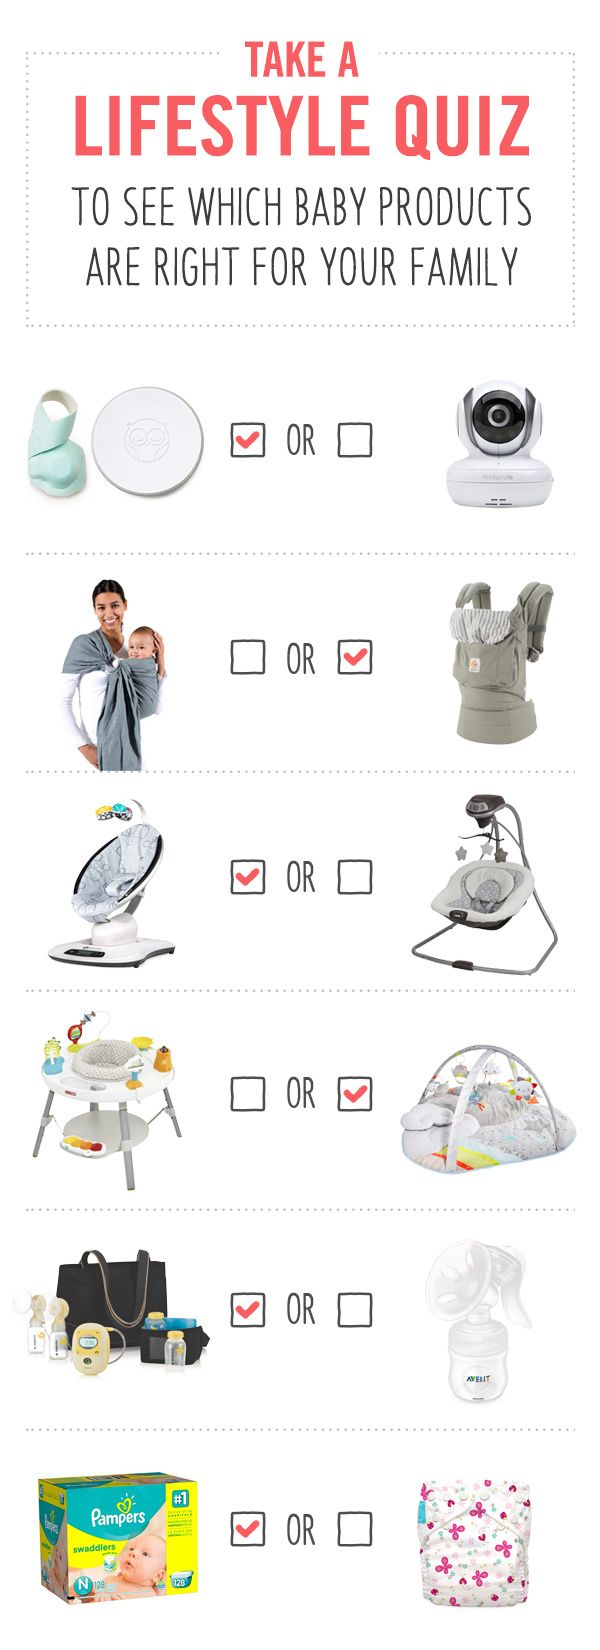 Preparing for baby? Take a lifestyle quiz to get your printable, personalized baby registry checklist. Find out what you really need, not what stores want to sell you.